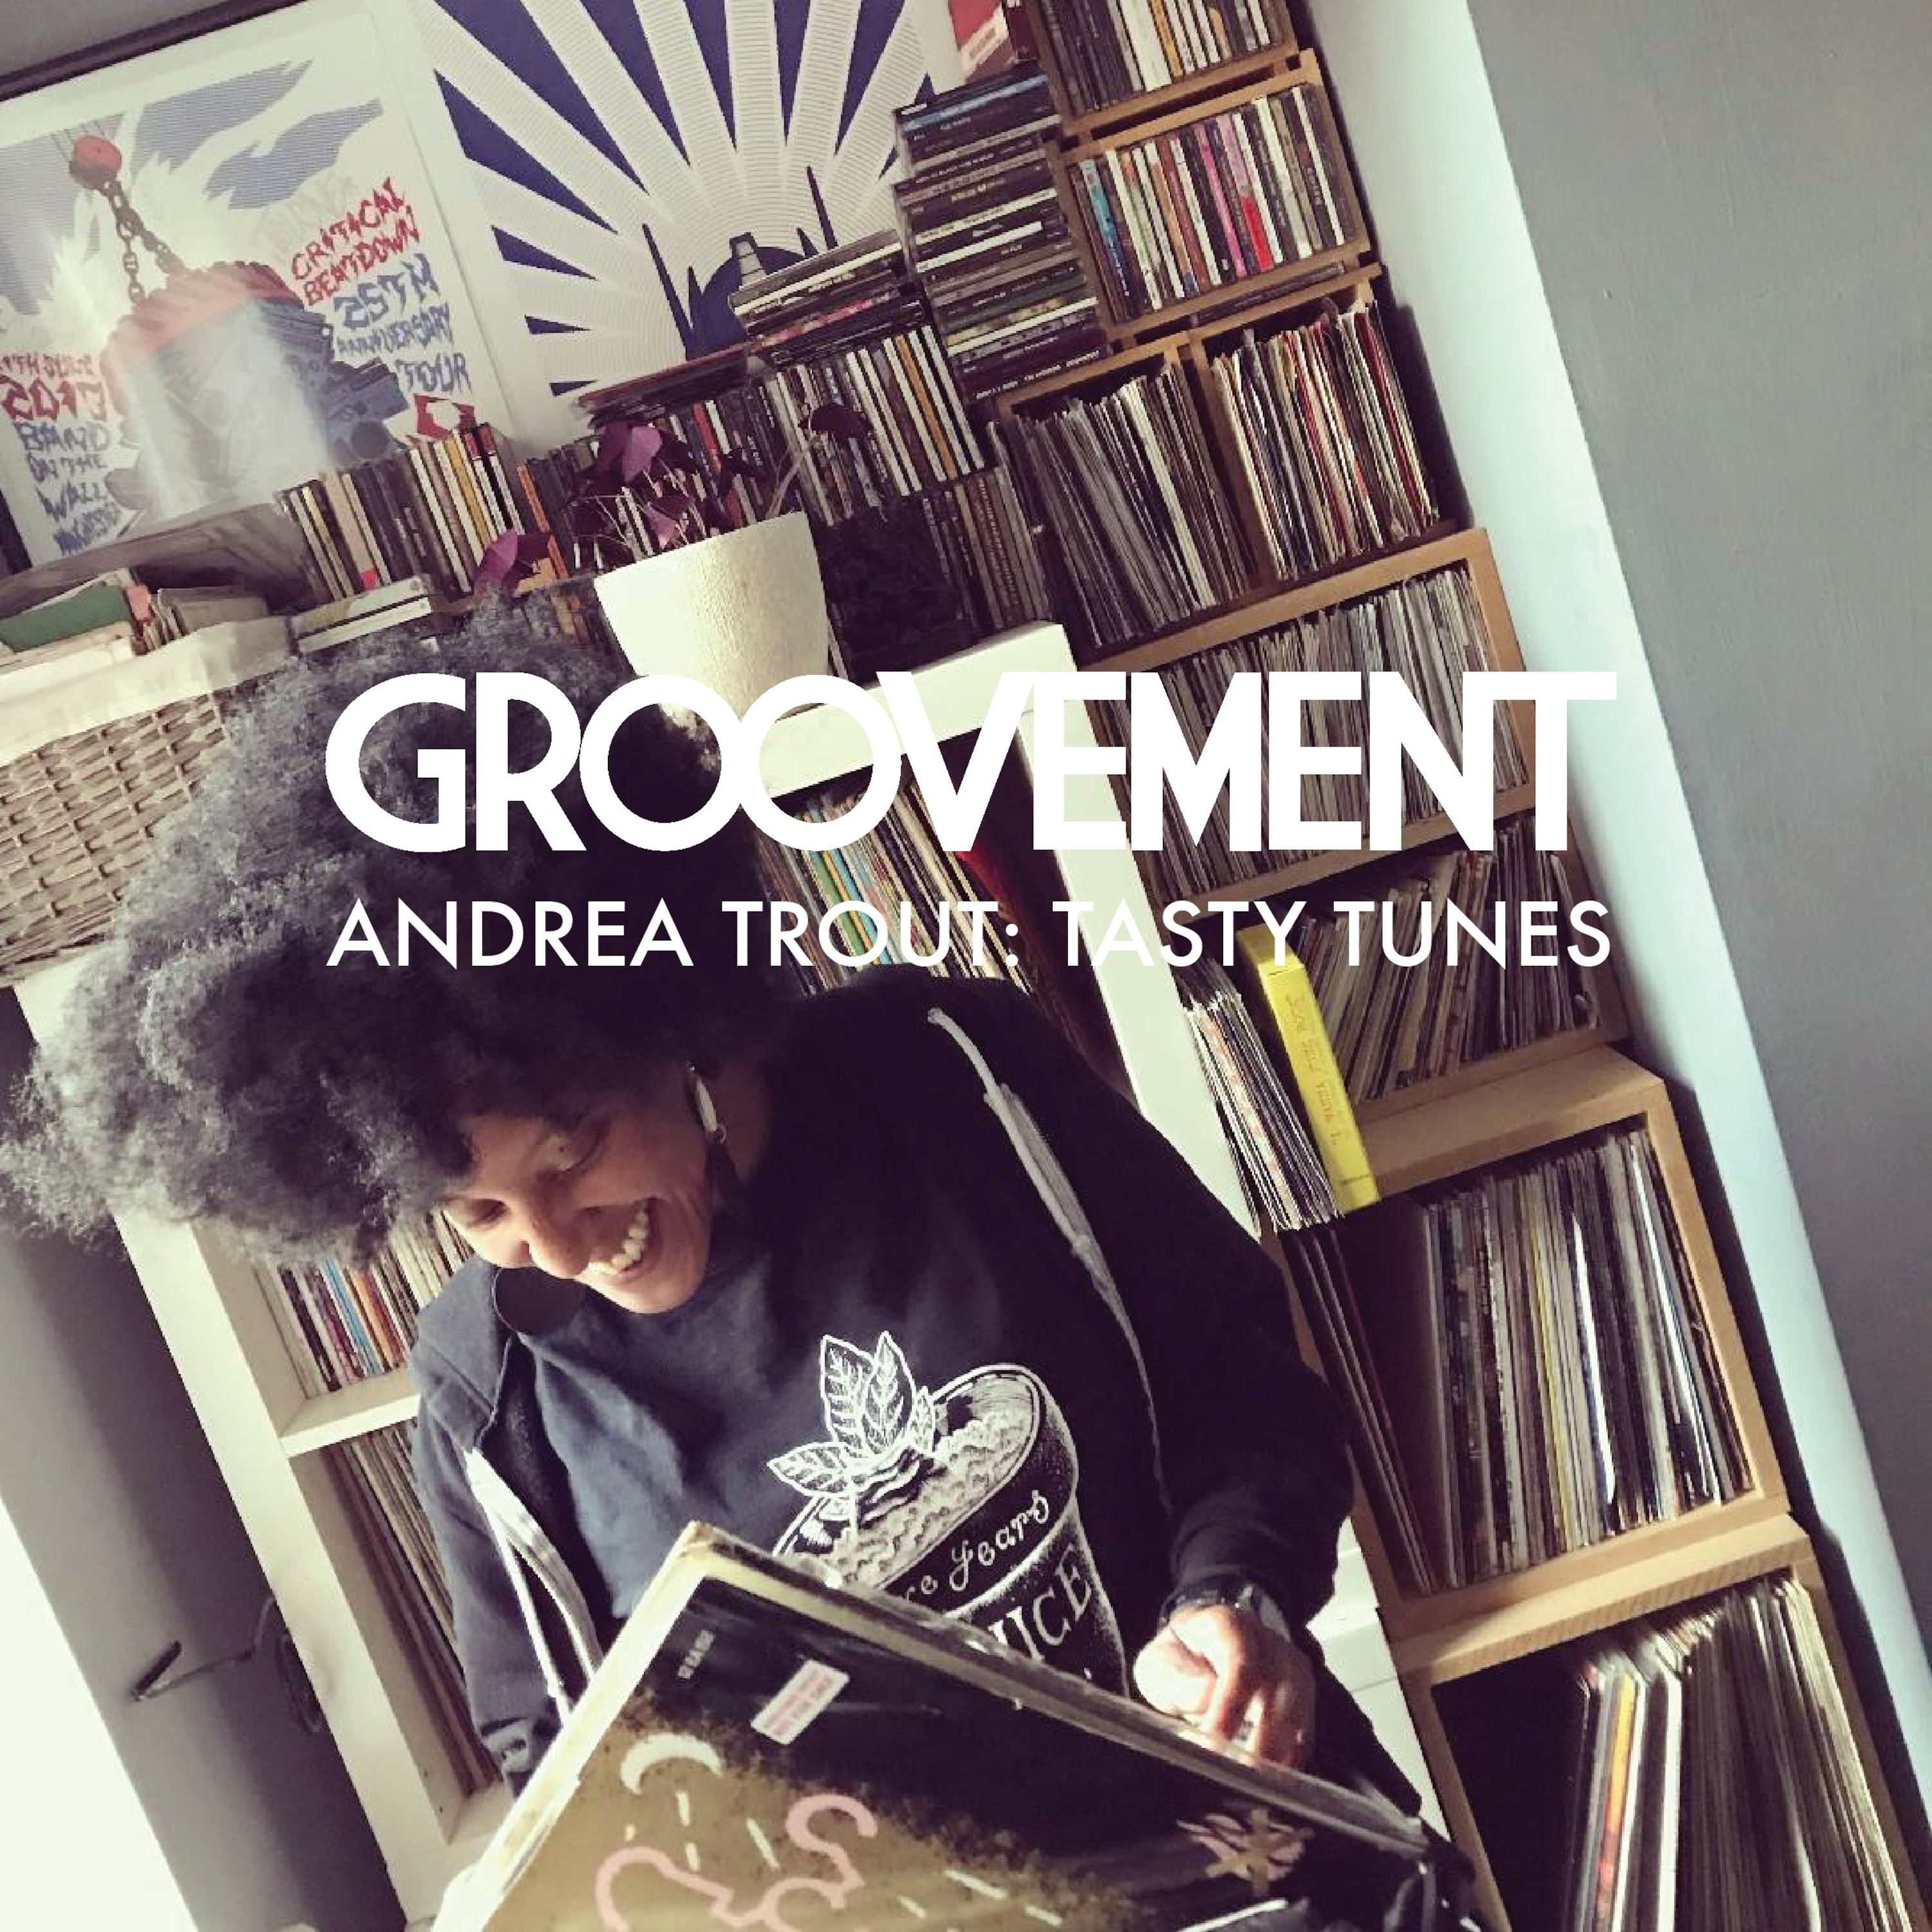 Andrea Porn Video Space Odyssey groovement